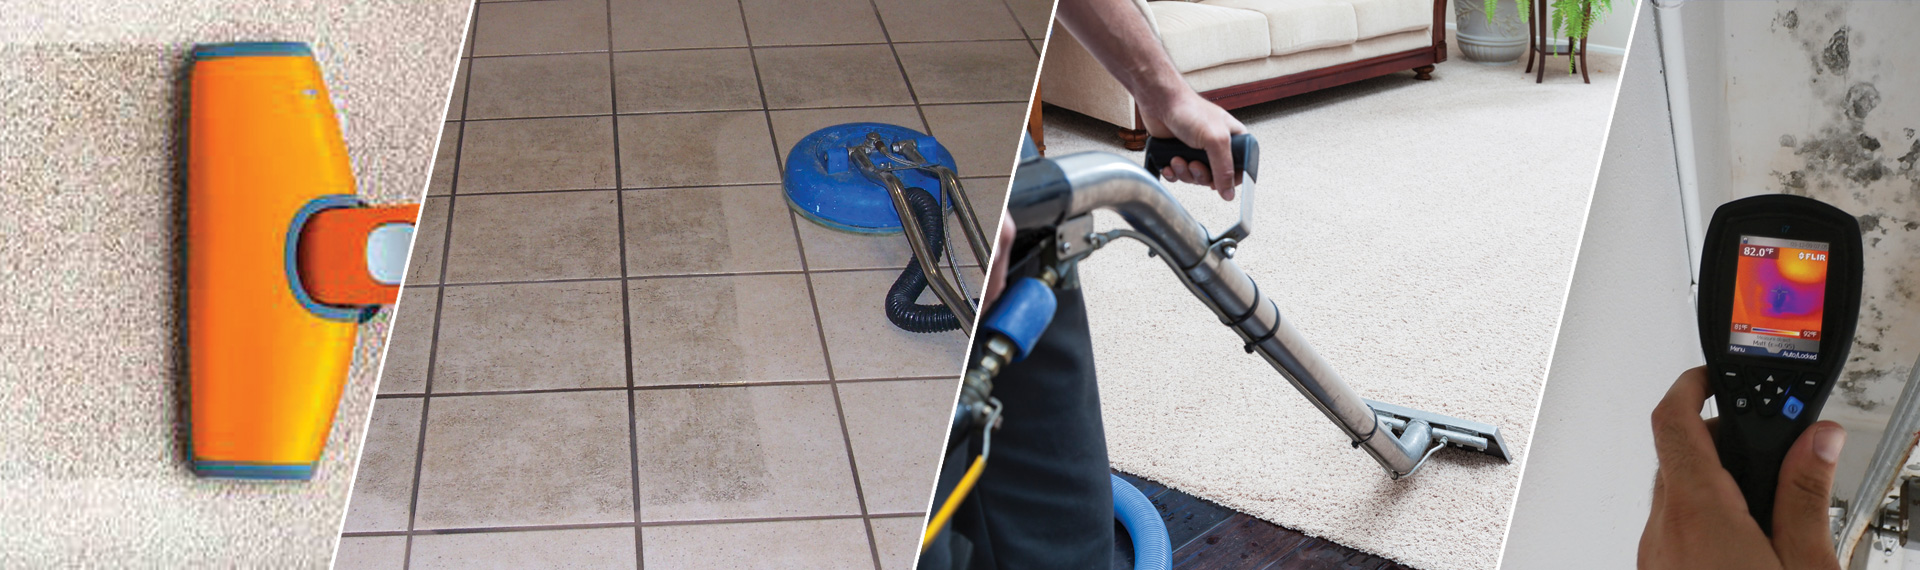 City Carpet Cleaners & Water Damage Restoration Spring TX